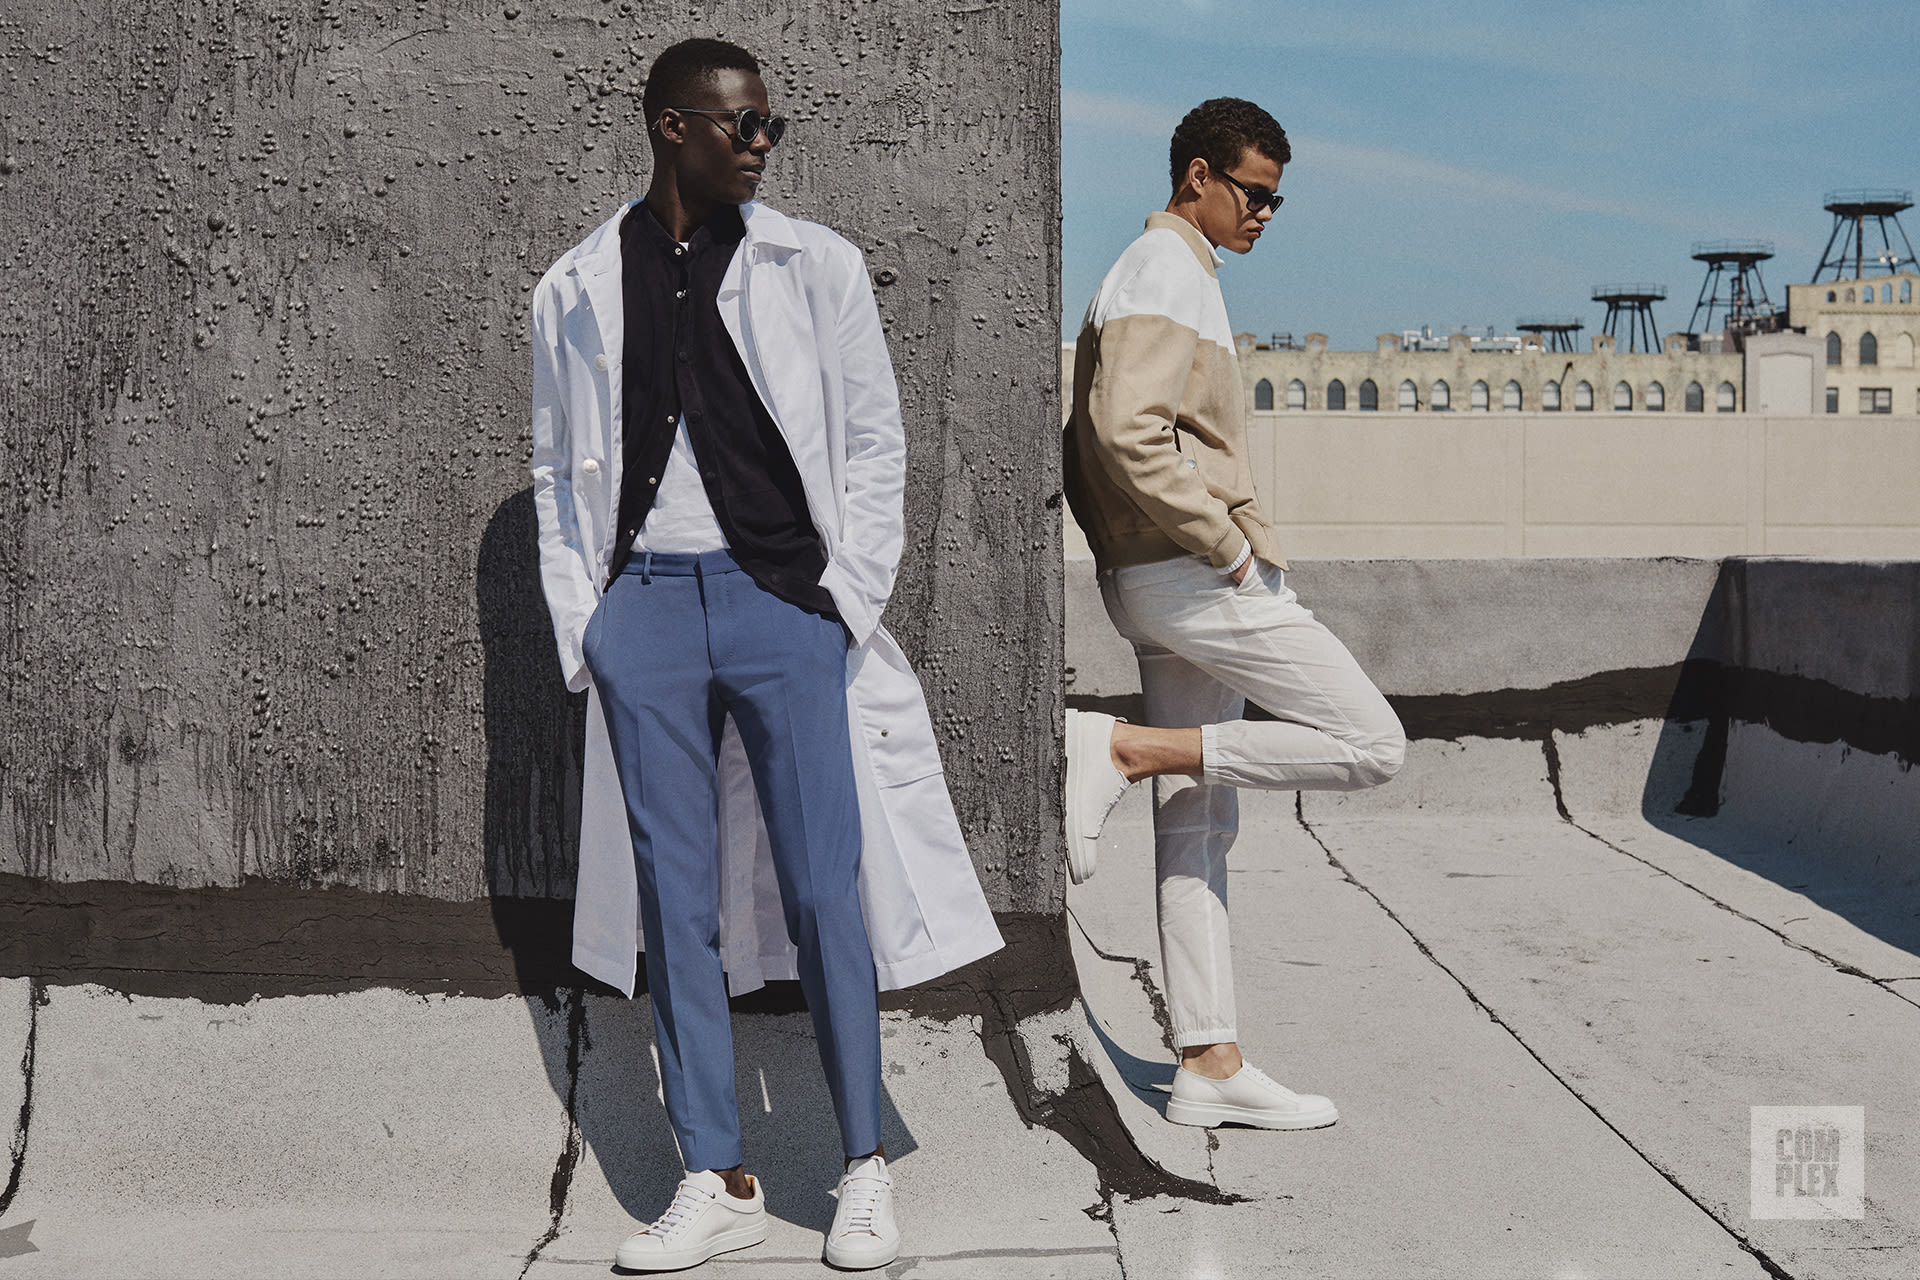 de0486b64 Hugo Boss White Capsule Collection - Spring 2019 Lookbook | Complex